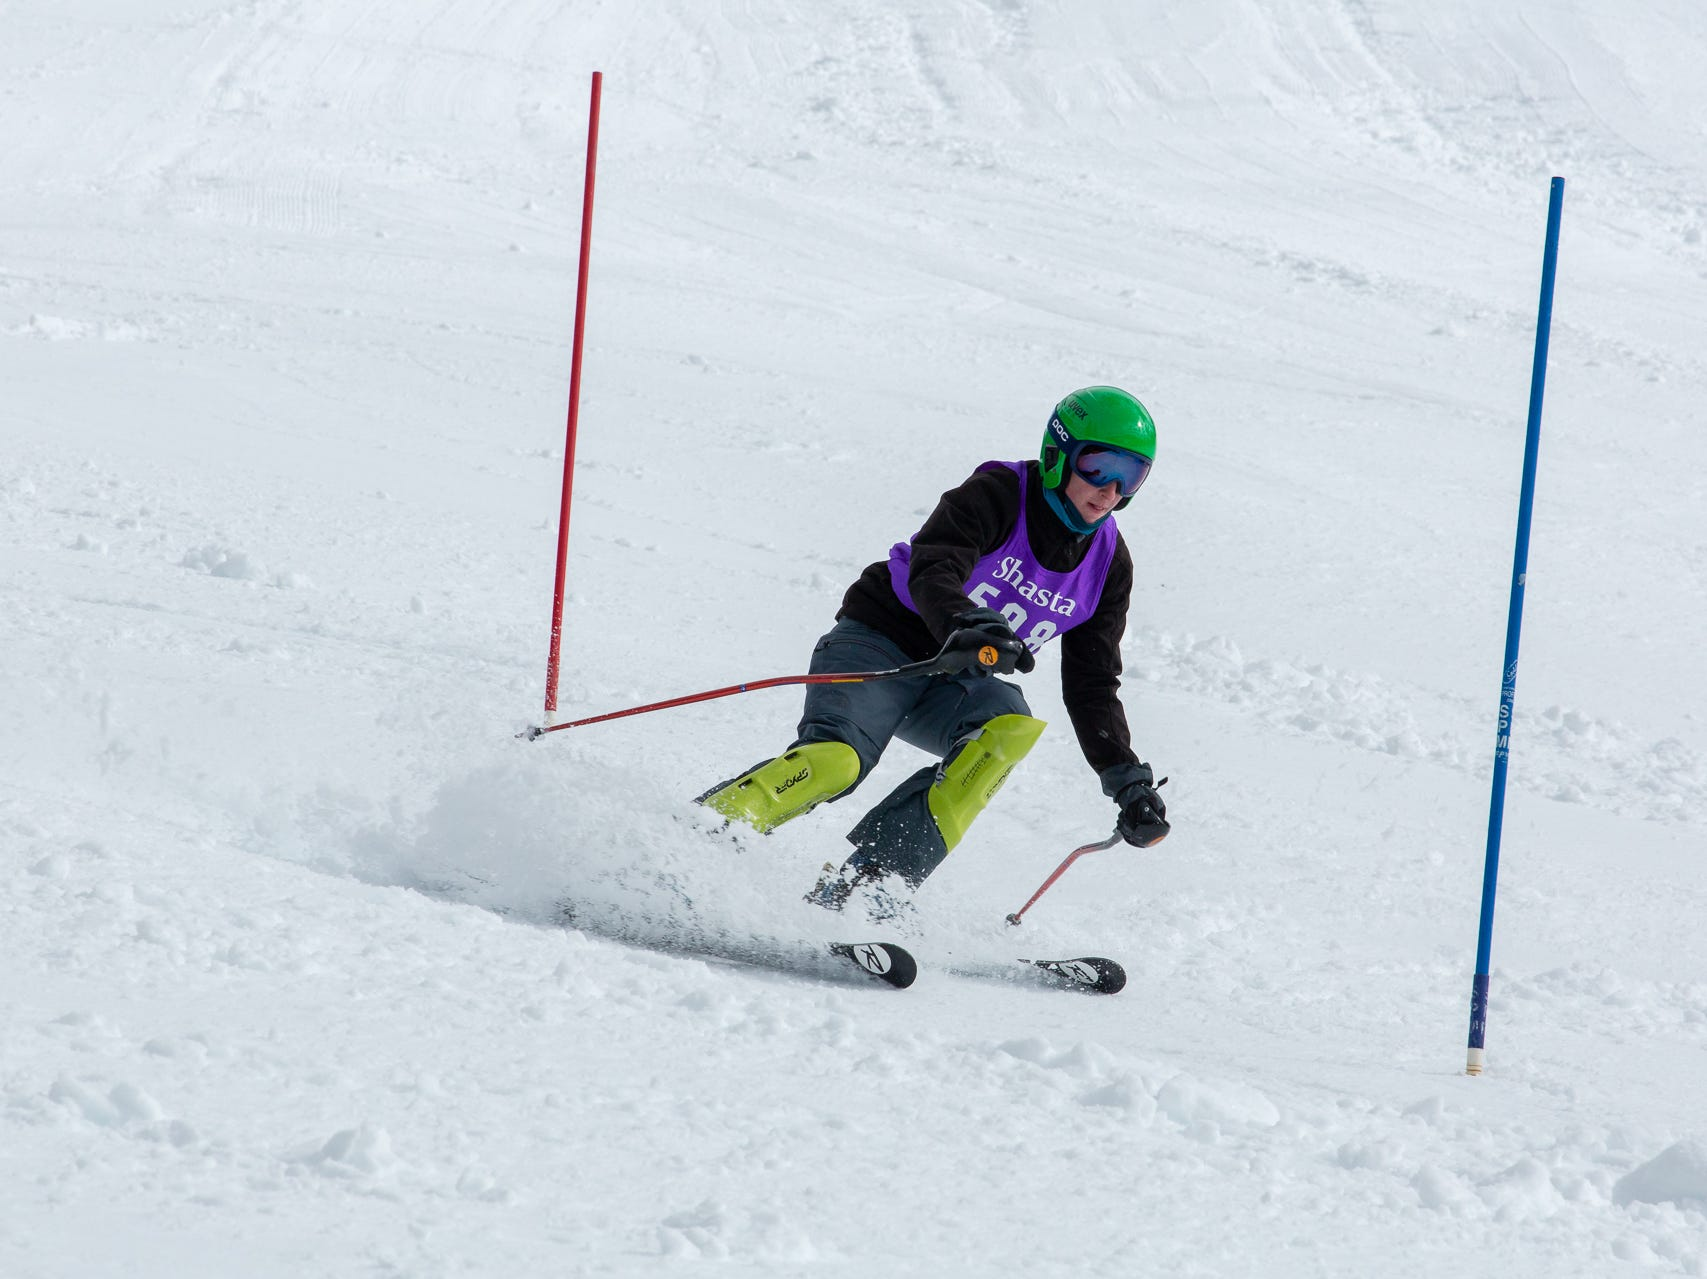 Nick Lindsay of Shasta competes in the second high school ski meet of 2019 on Monday, Jan. 21 at Mt. Shasta Ski Park.